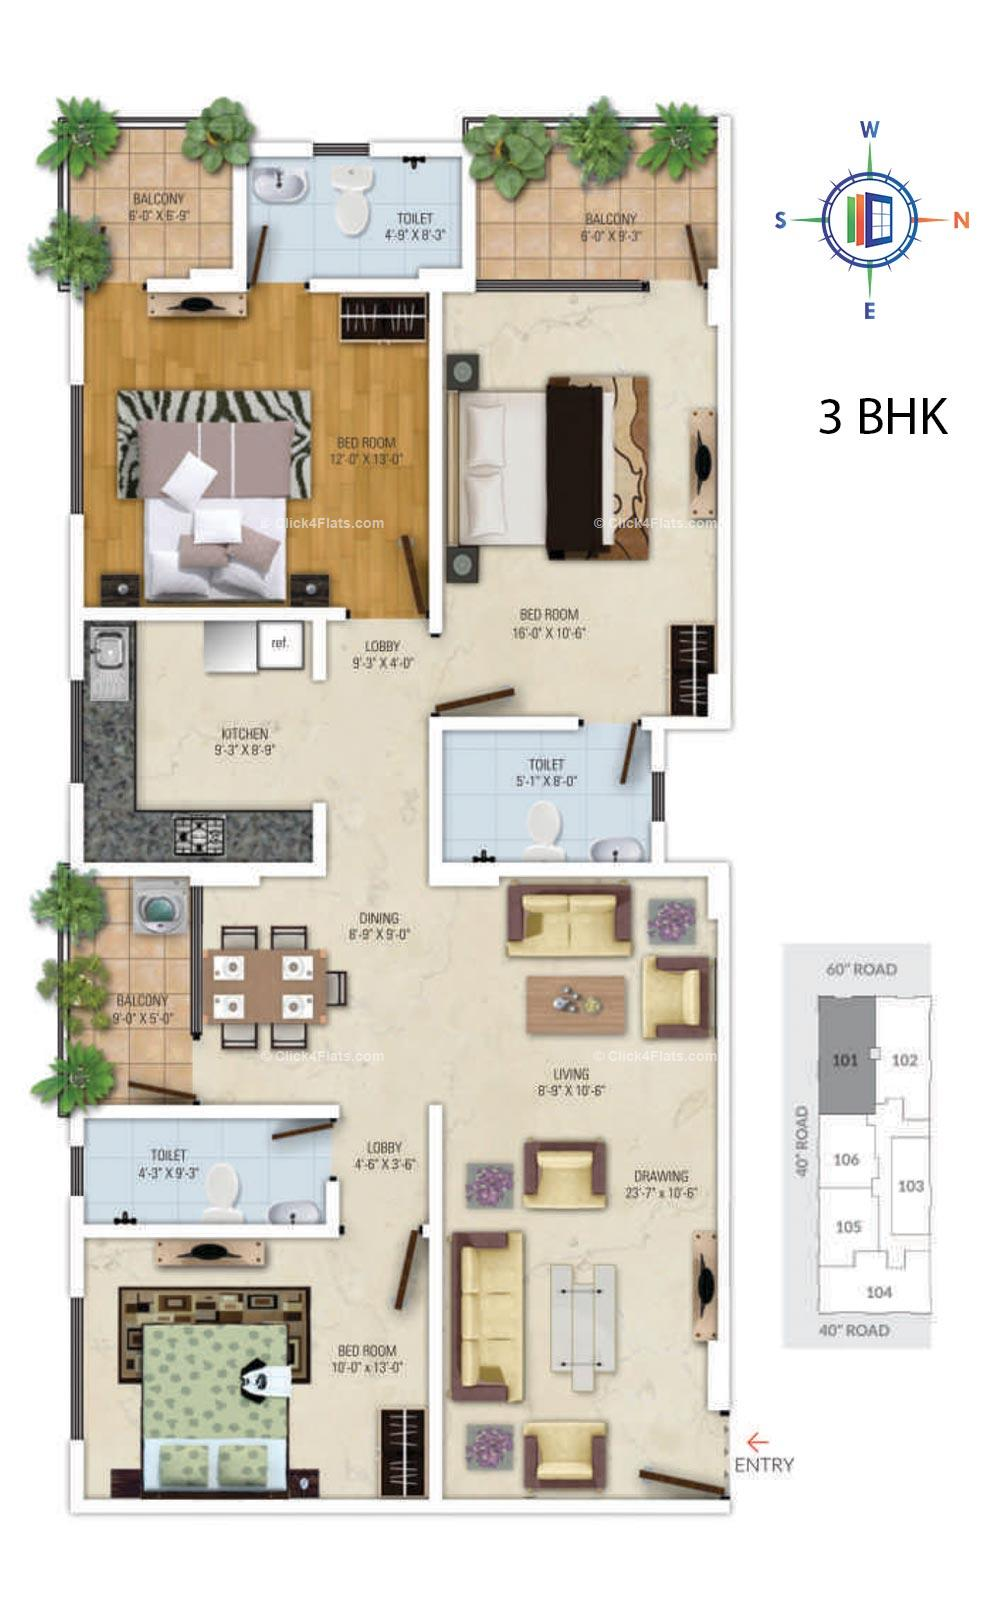 Royal Avenue 3 BHK